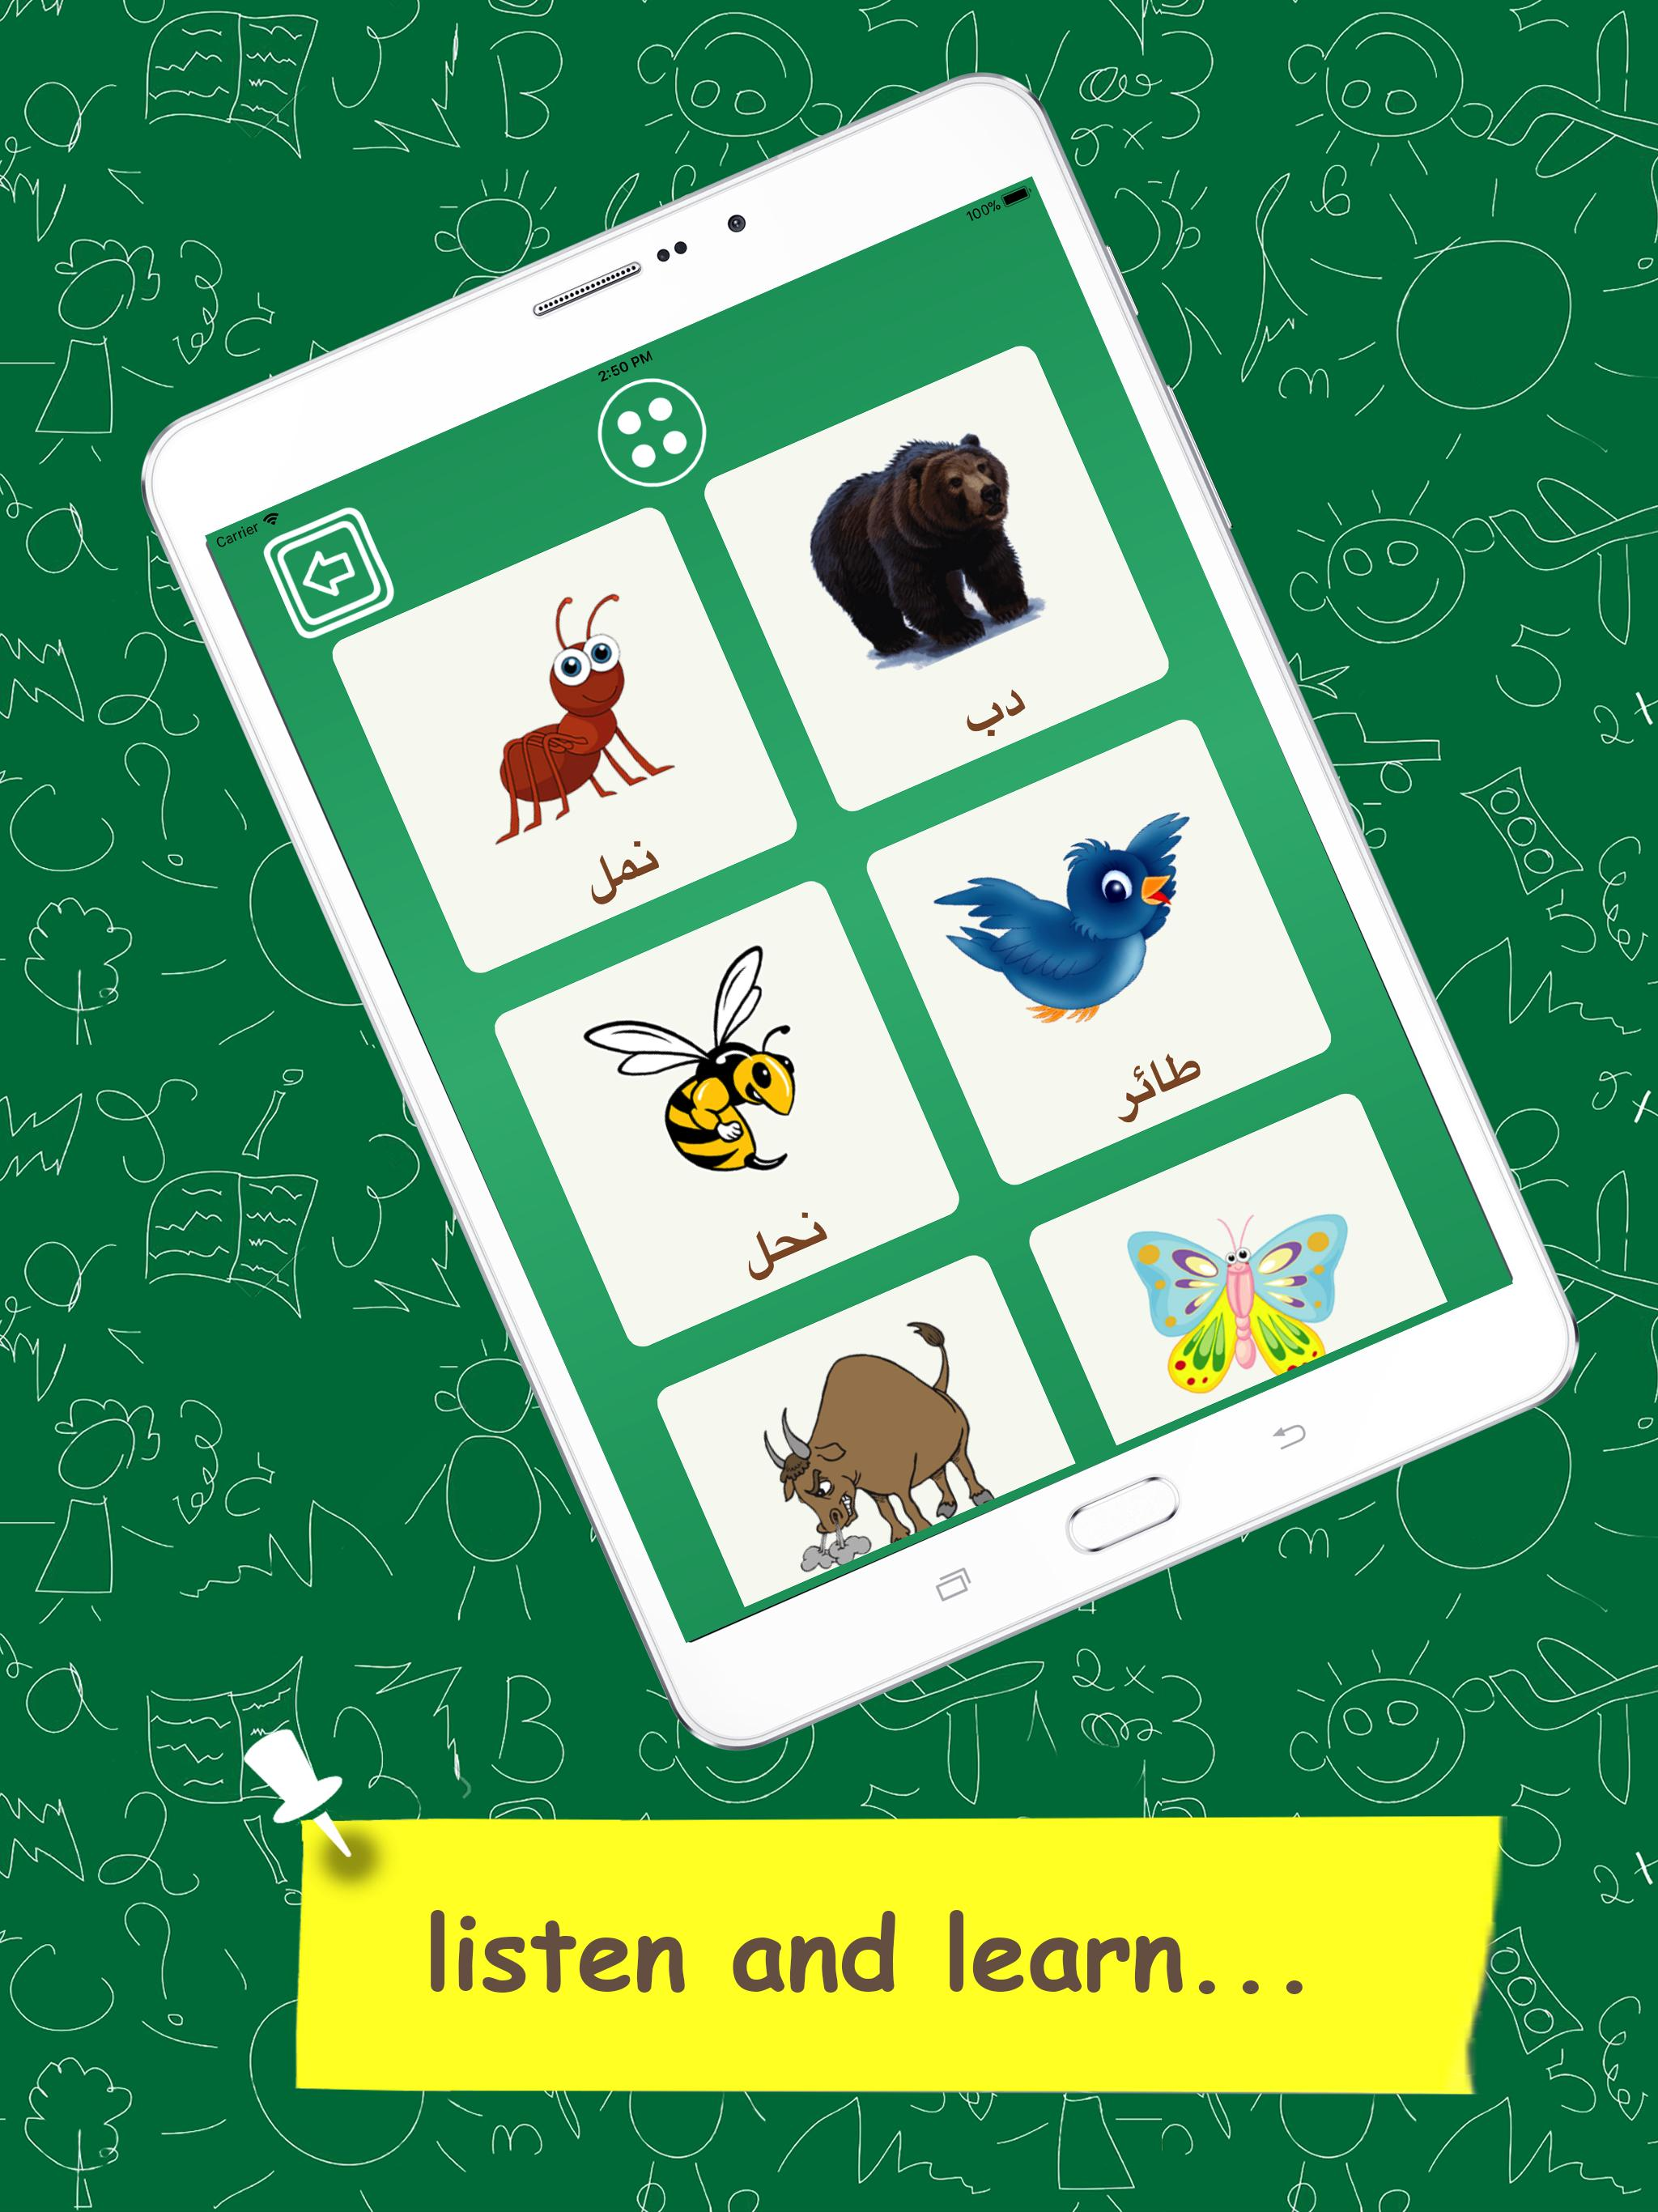 Learn Arabic Vocabulary - Kids 1.0.4 Screenshot 8